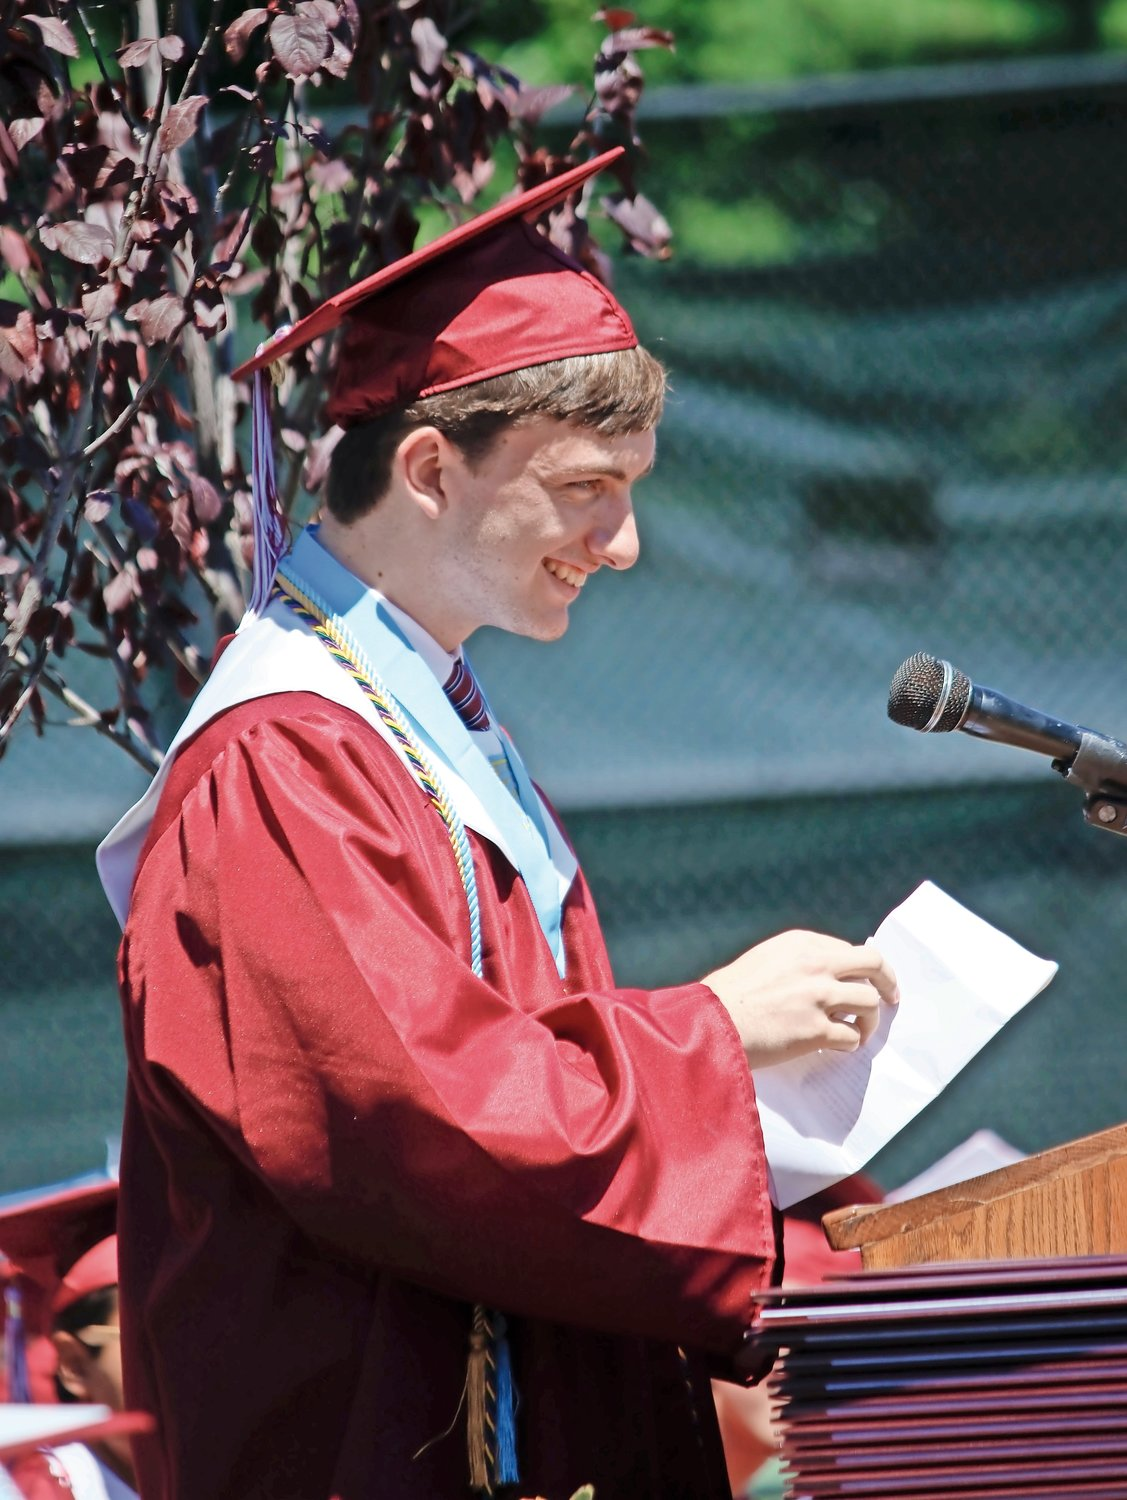 Valedictorian James Campbell shared some words of wisdom with the crowd.